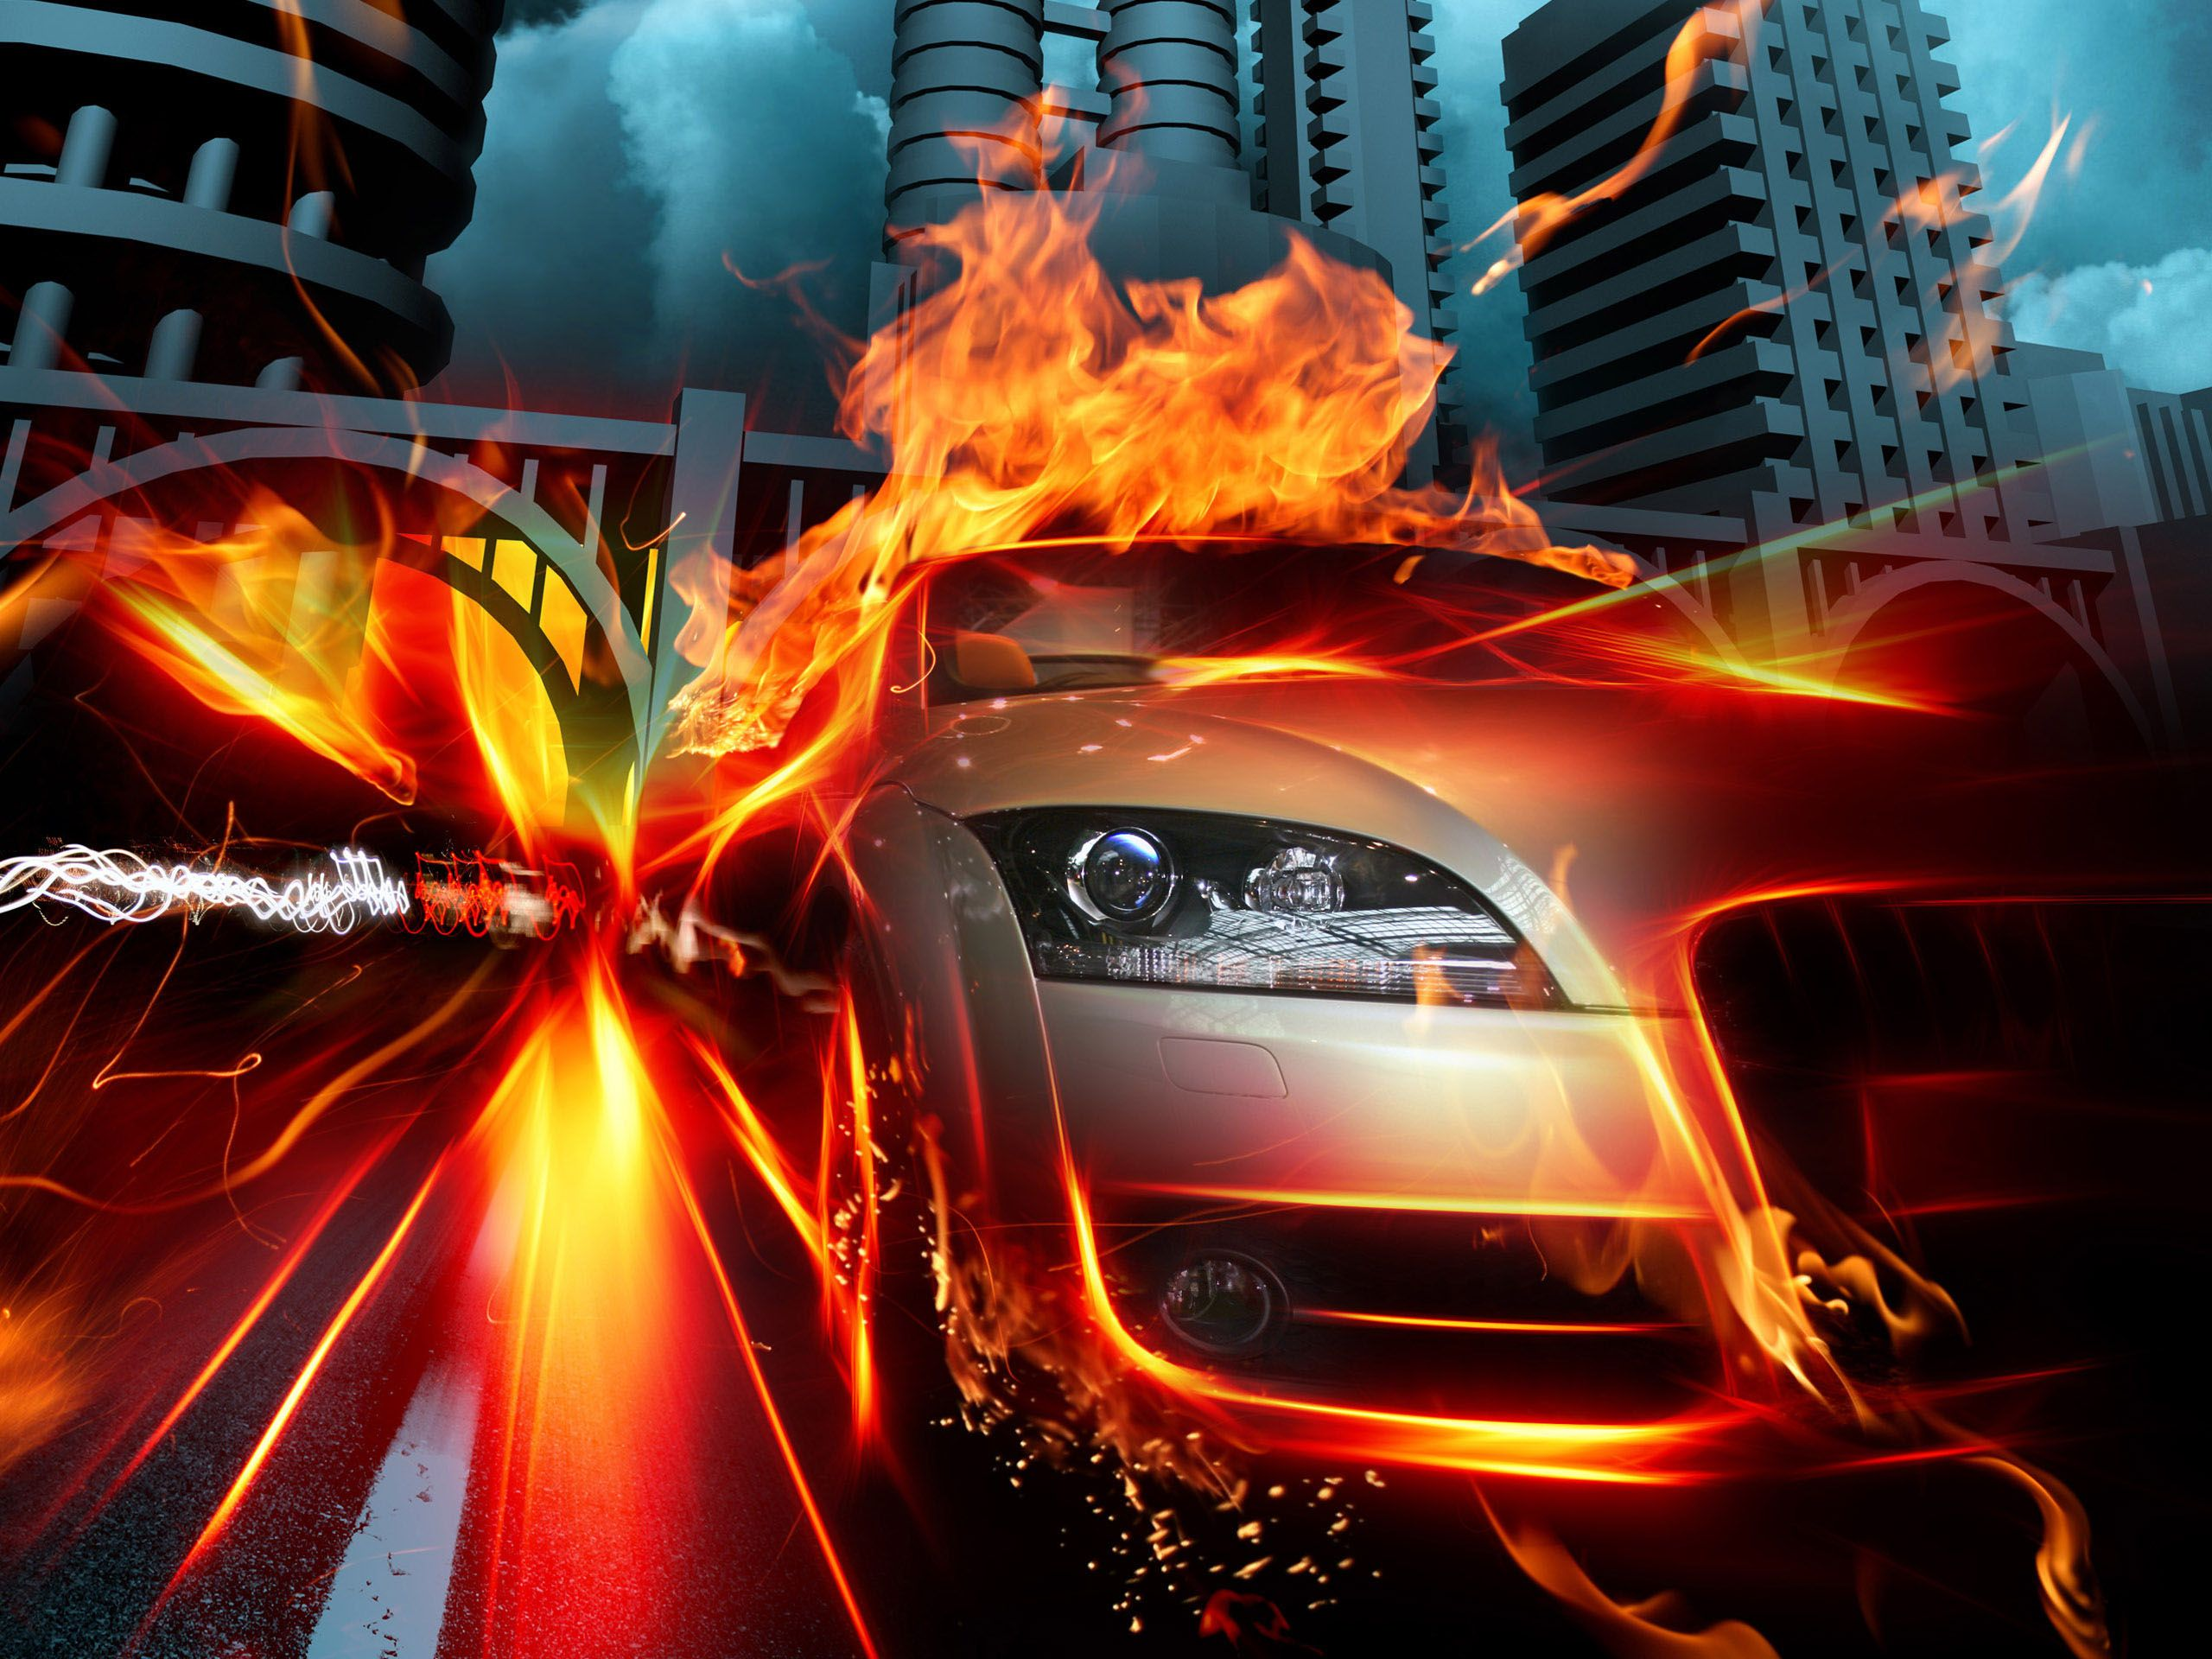 Car In Fire Hd Wallpapers Car Wallpapers Car Car Ins